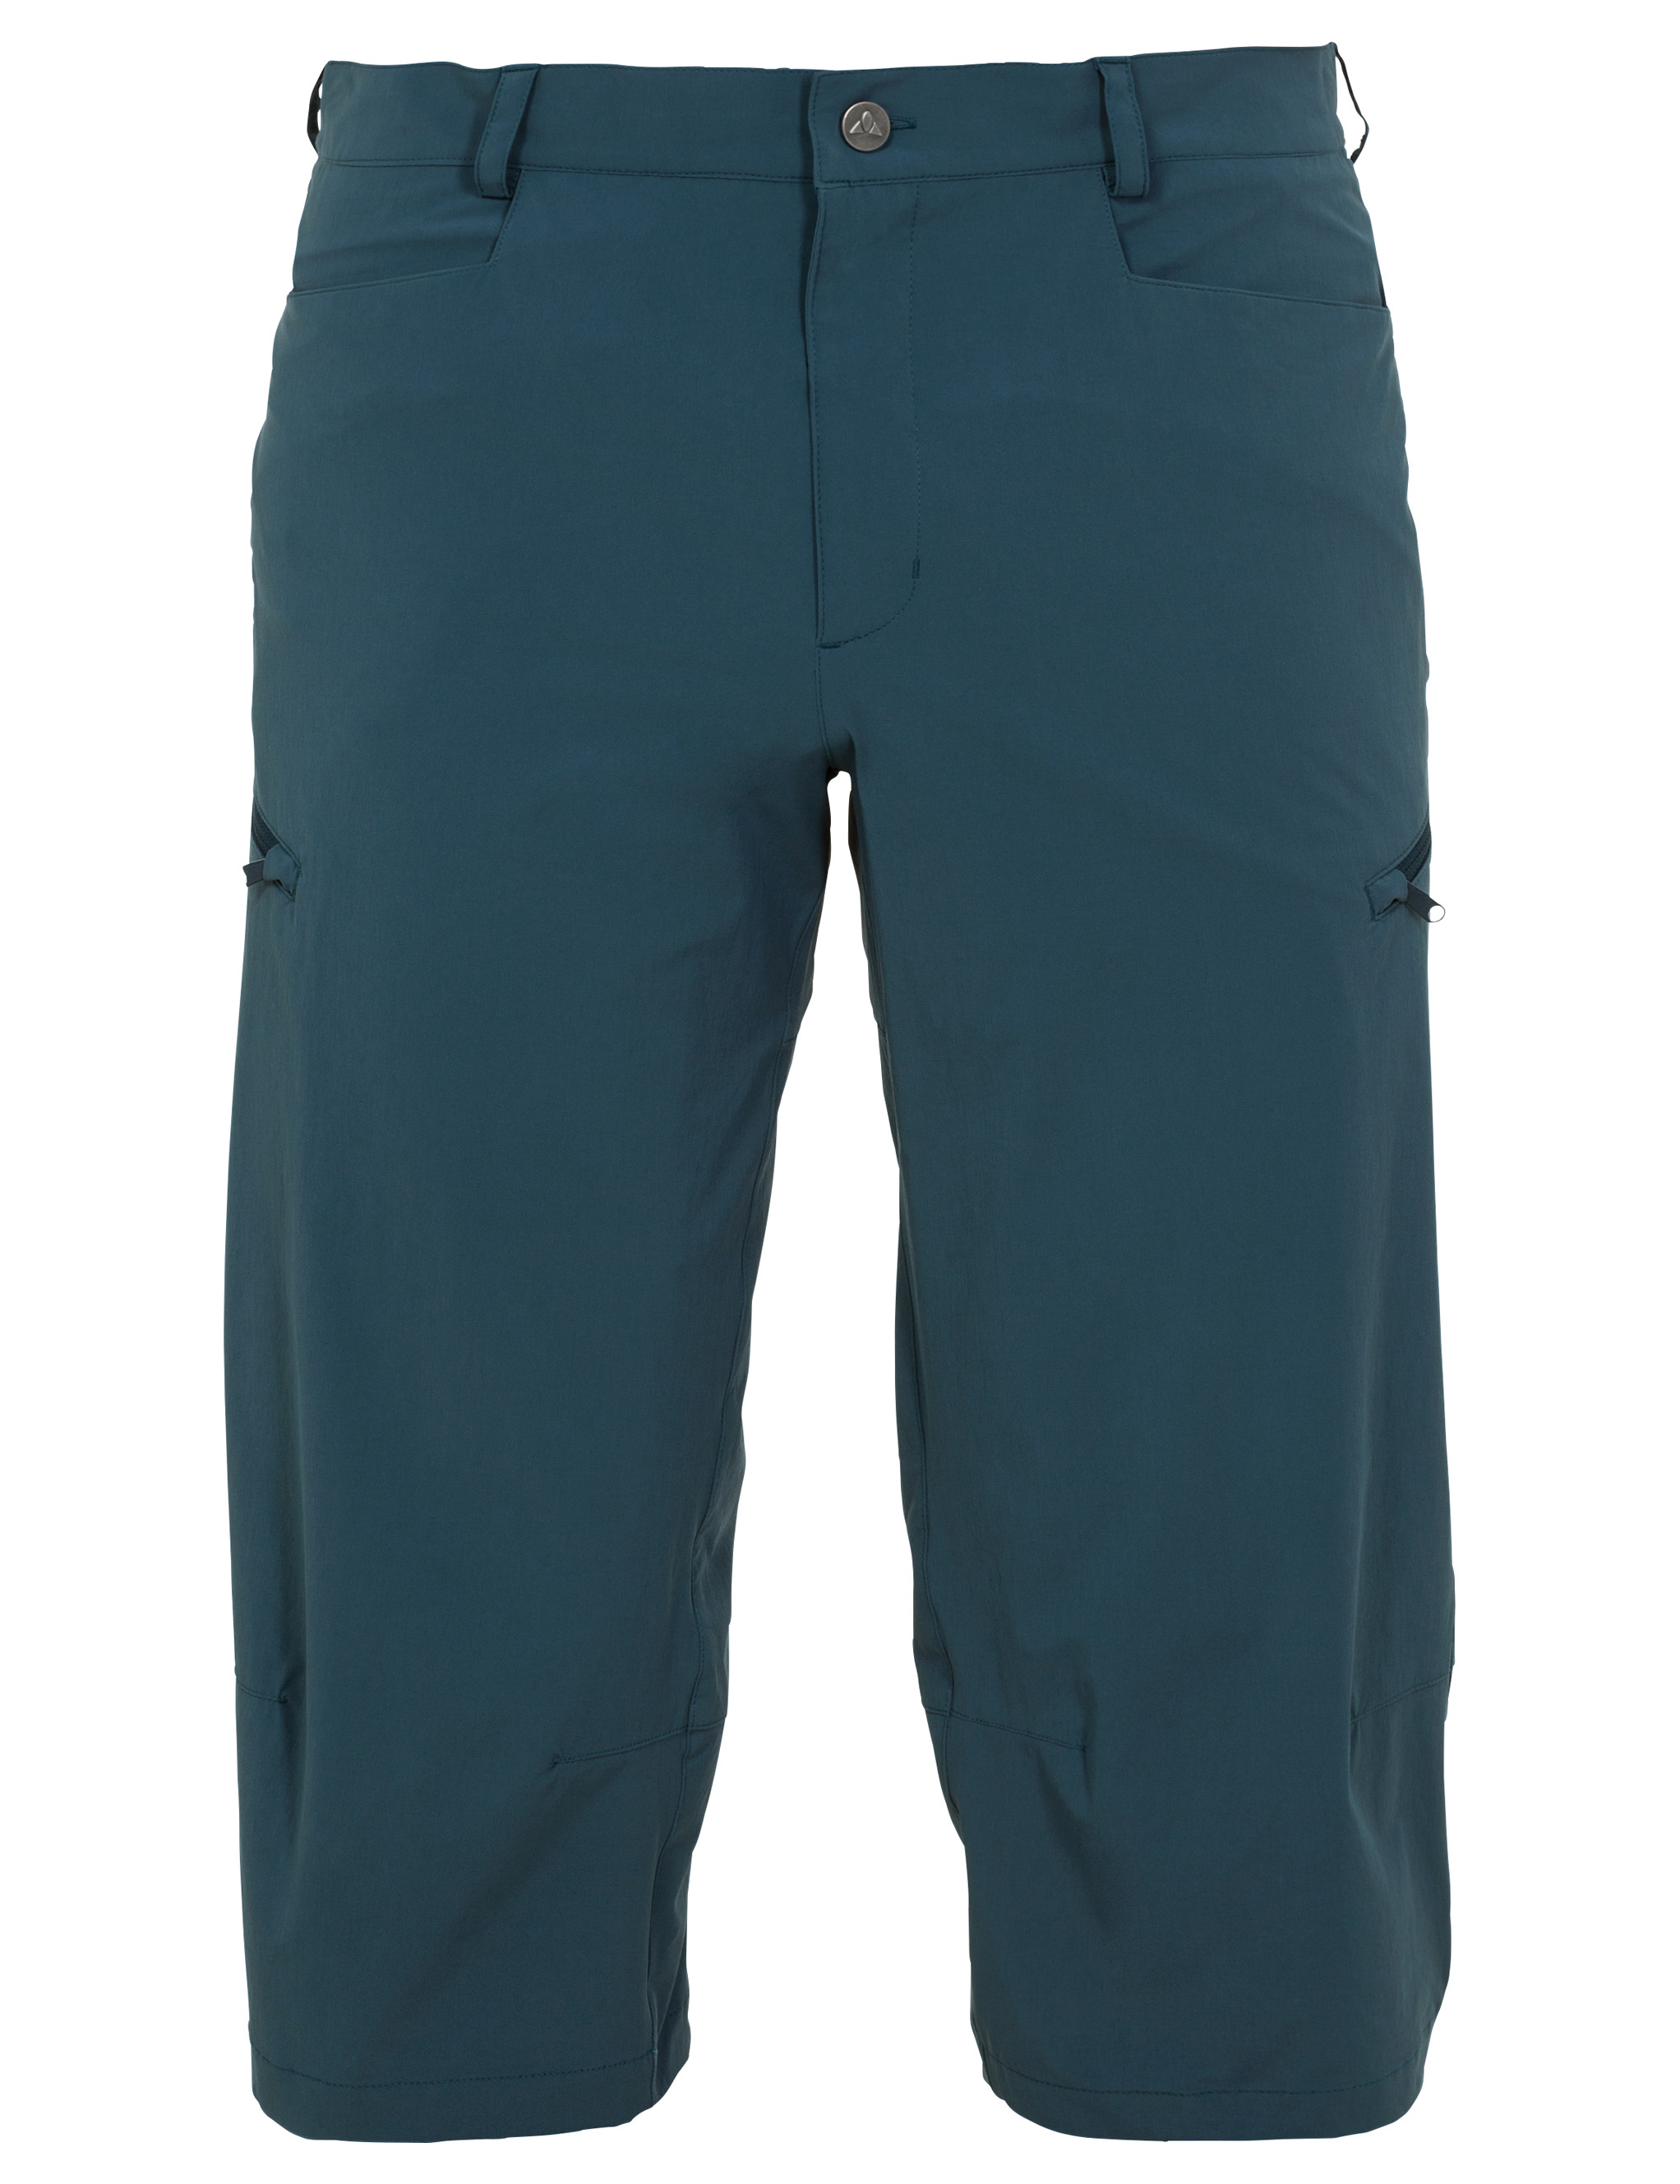 VAUDE Men´s Yaki 3/4 Pants dark petrol Größe L - schneider-sports